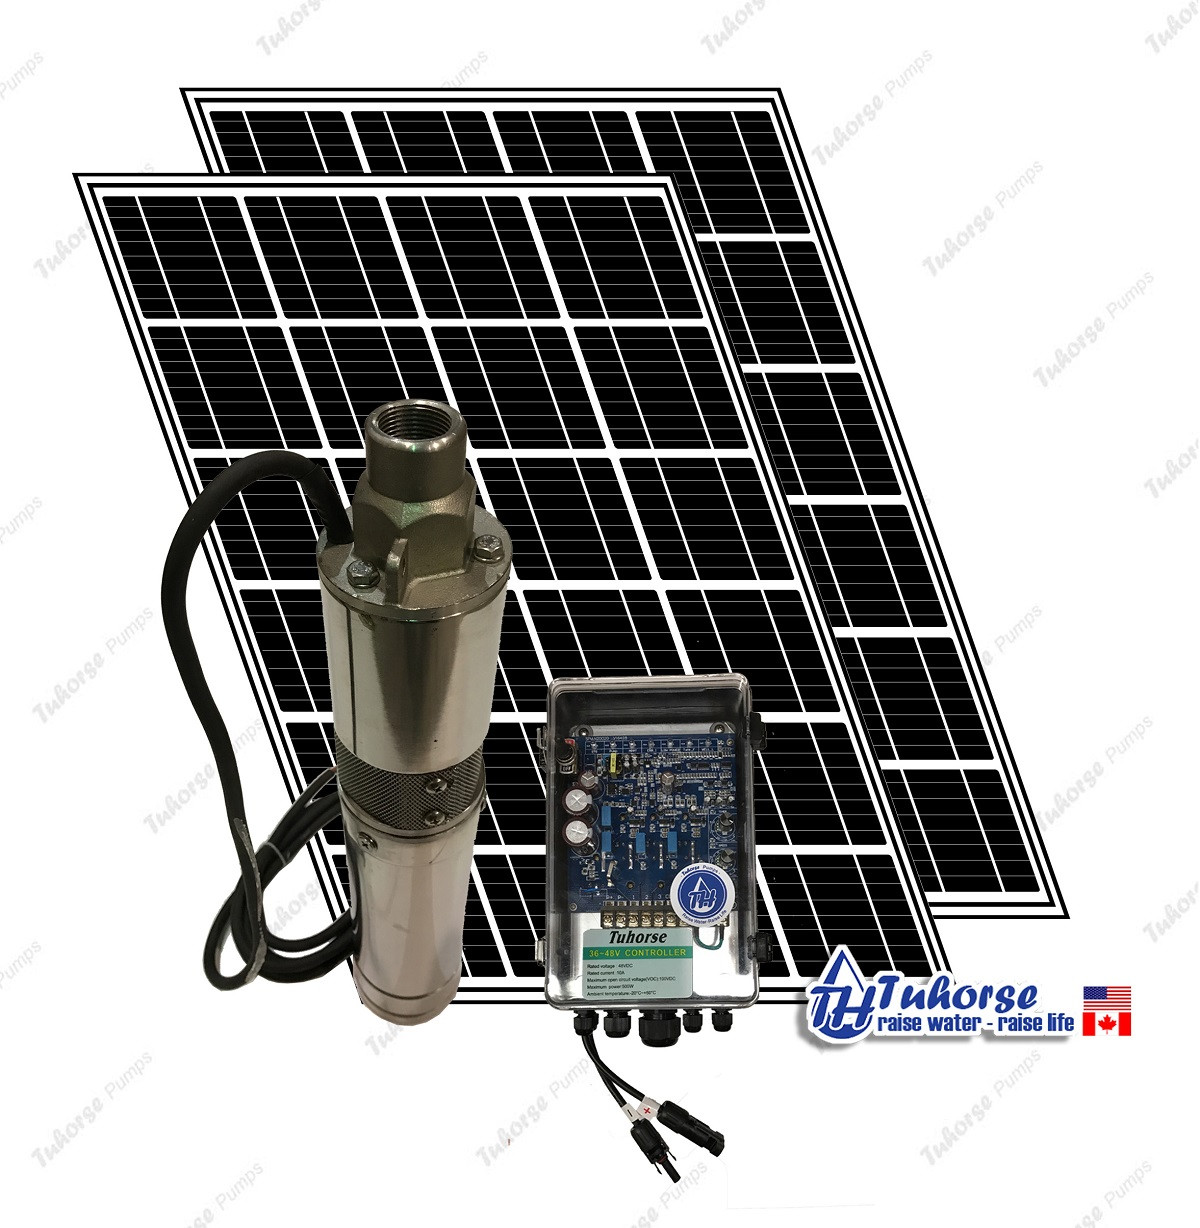 small resolution of solar water pumps 500w 4gpm deep well pump tuhorse wiring 4 wire 220 to 3 prong plug as well solar panel prices